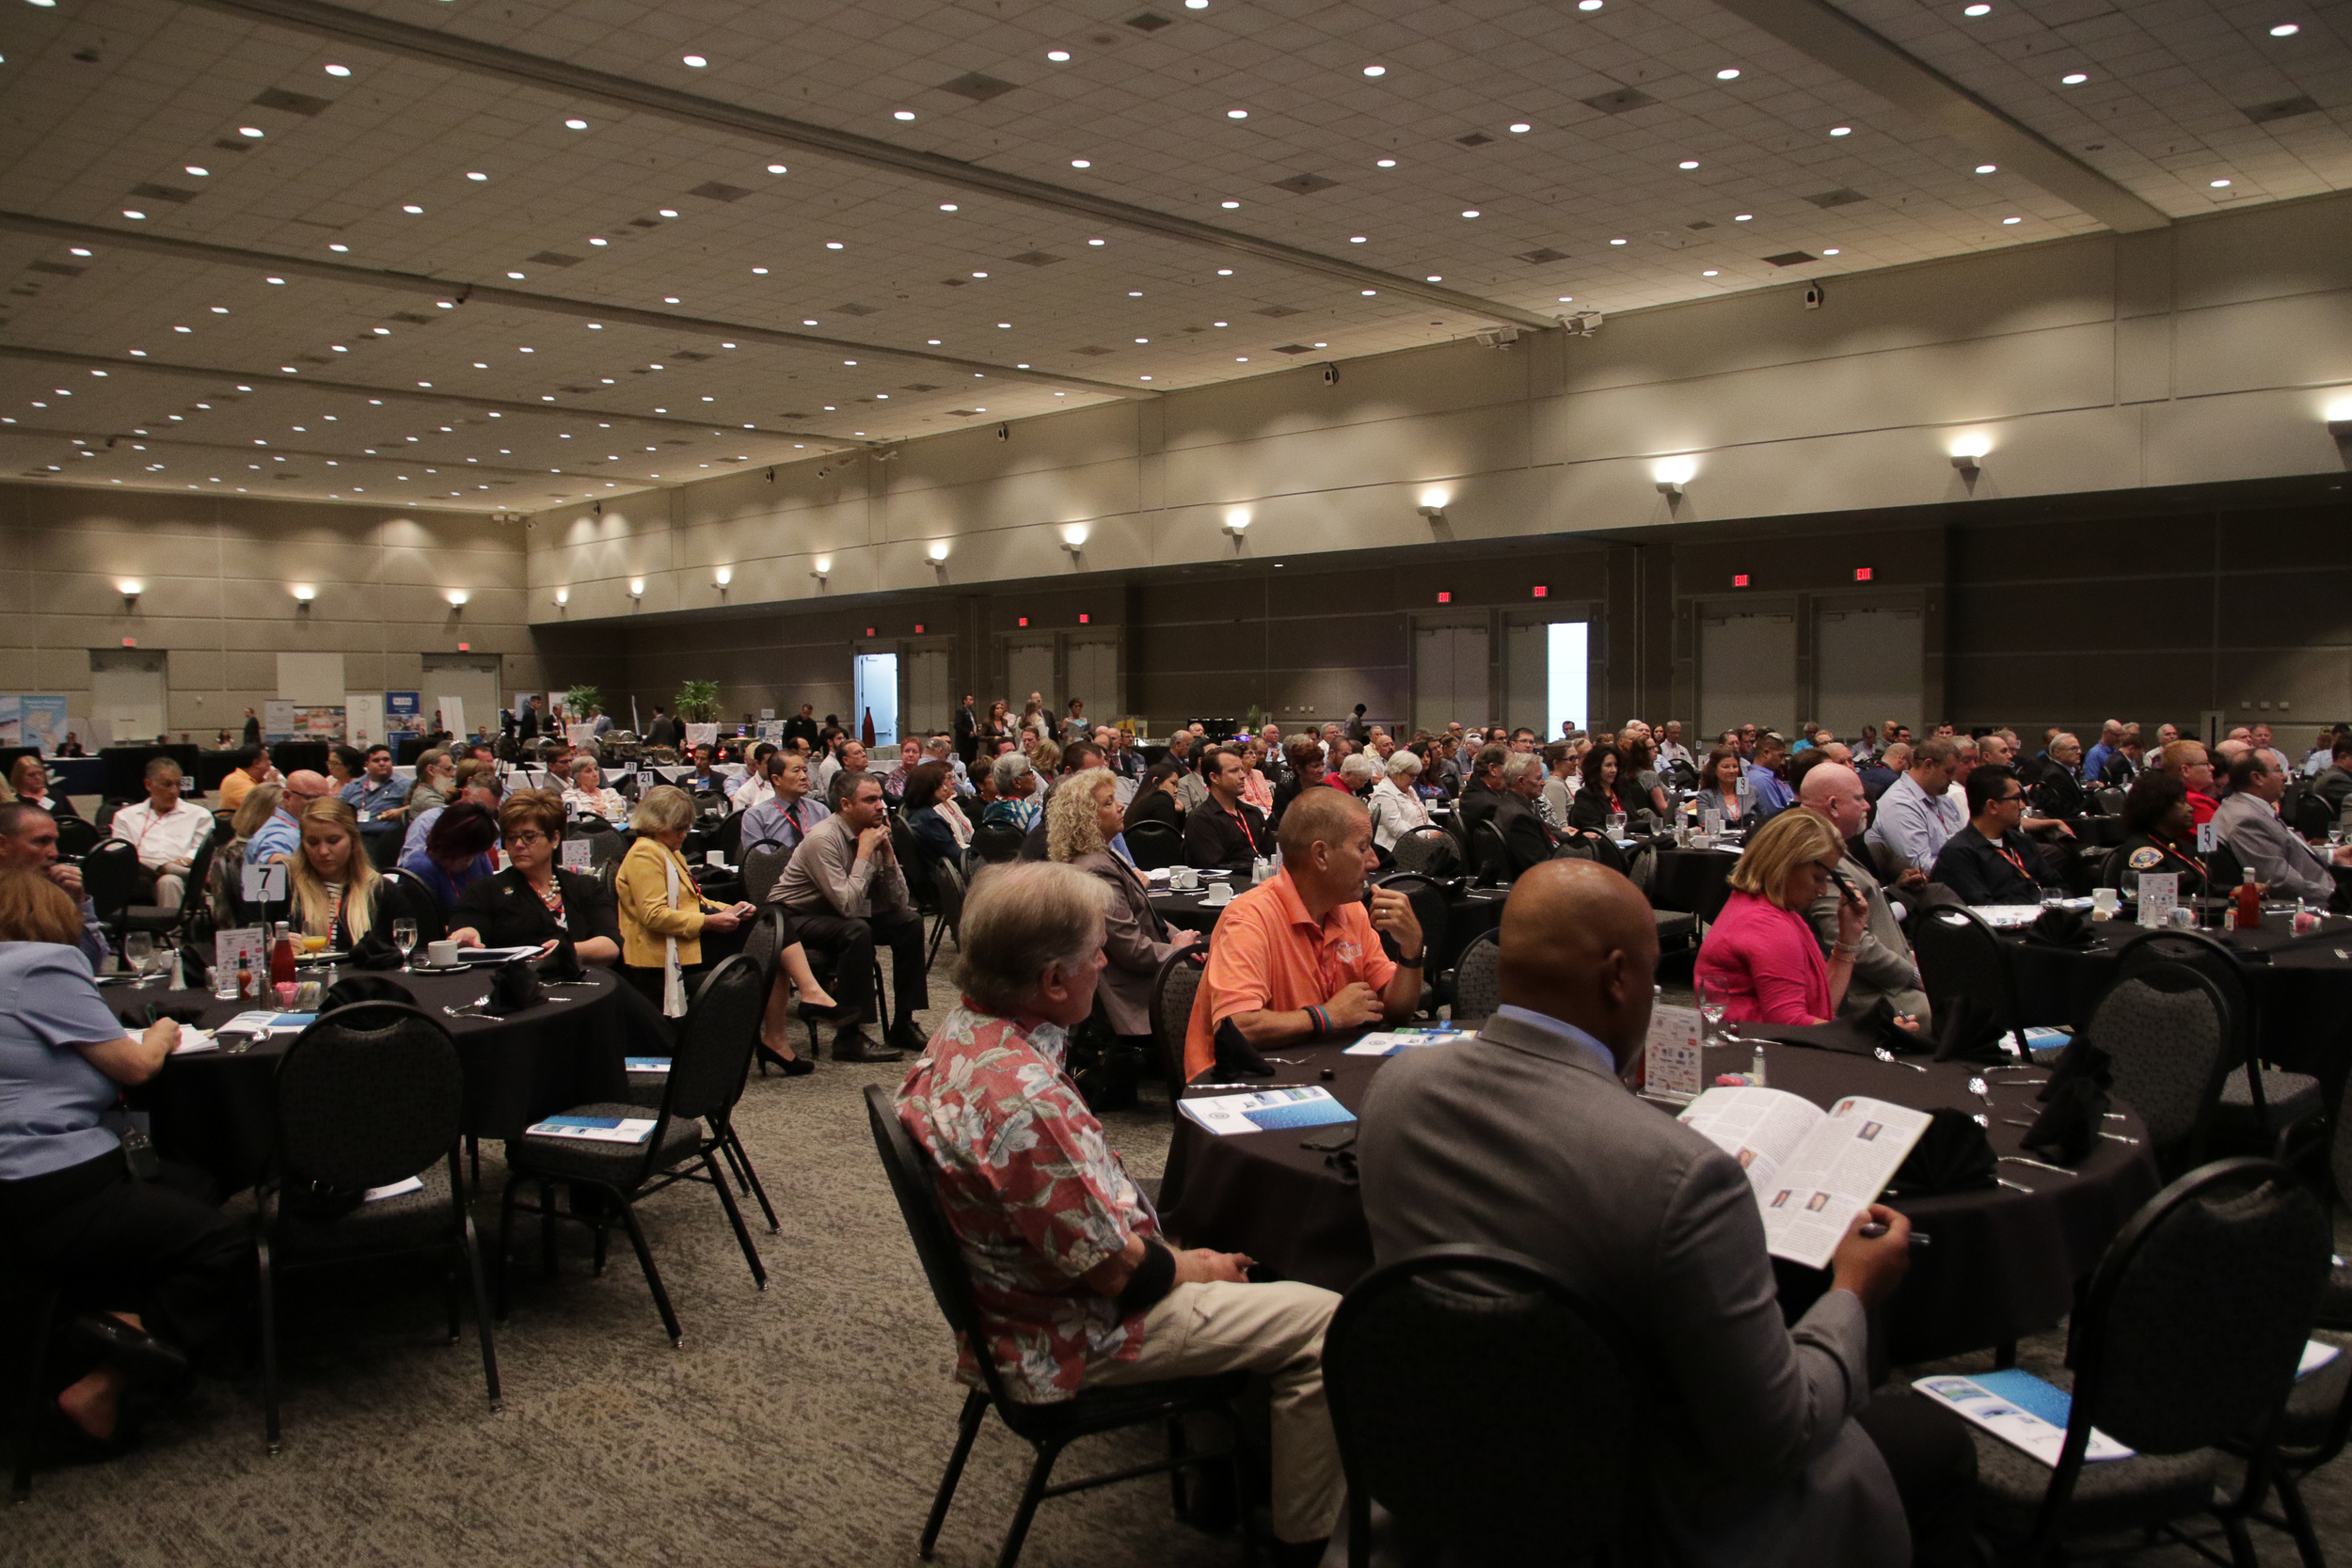 Over 300 attendees registered for the 10th Annual San Bernardino County Water Conference